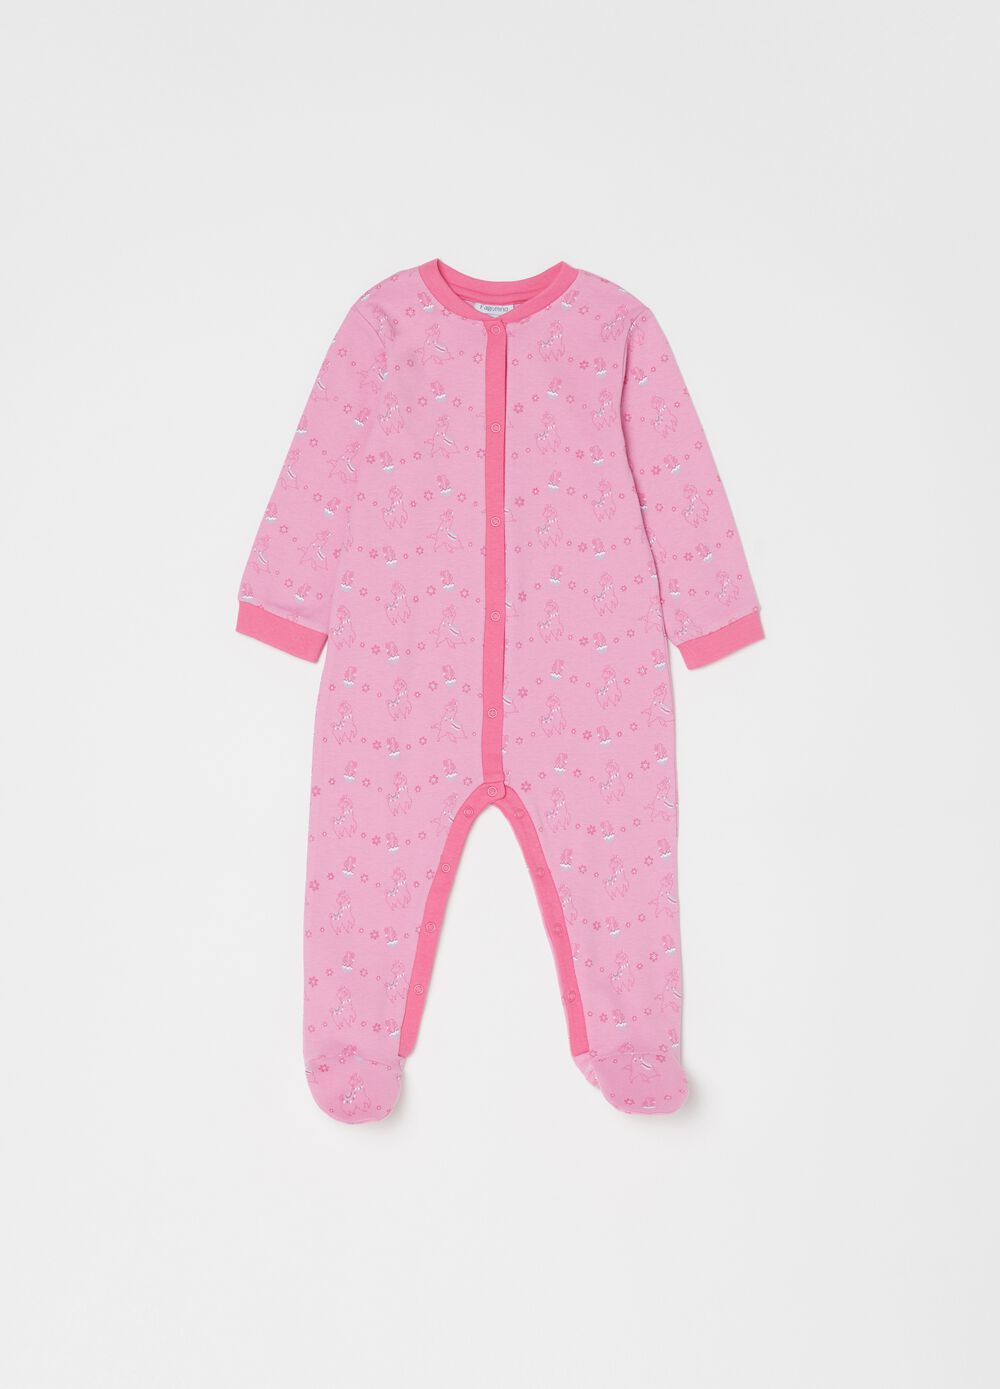 100% organic cotton onesie with feet and sheep